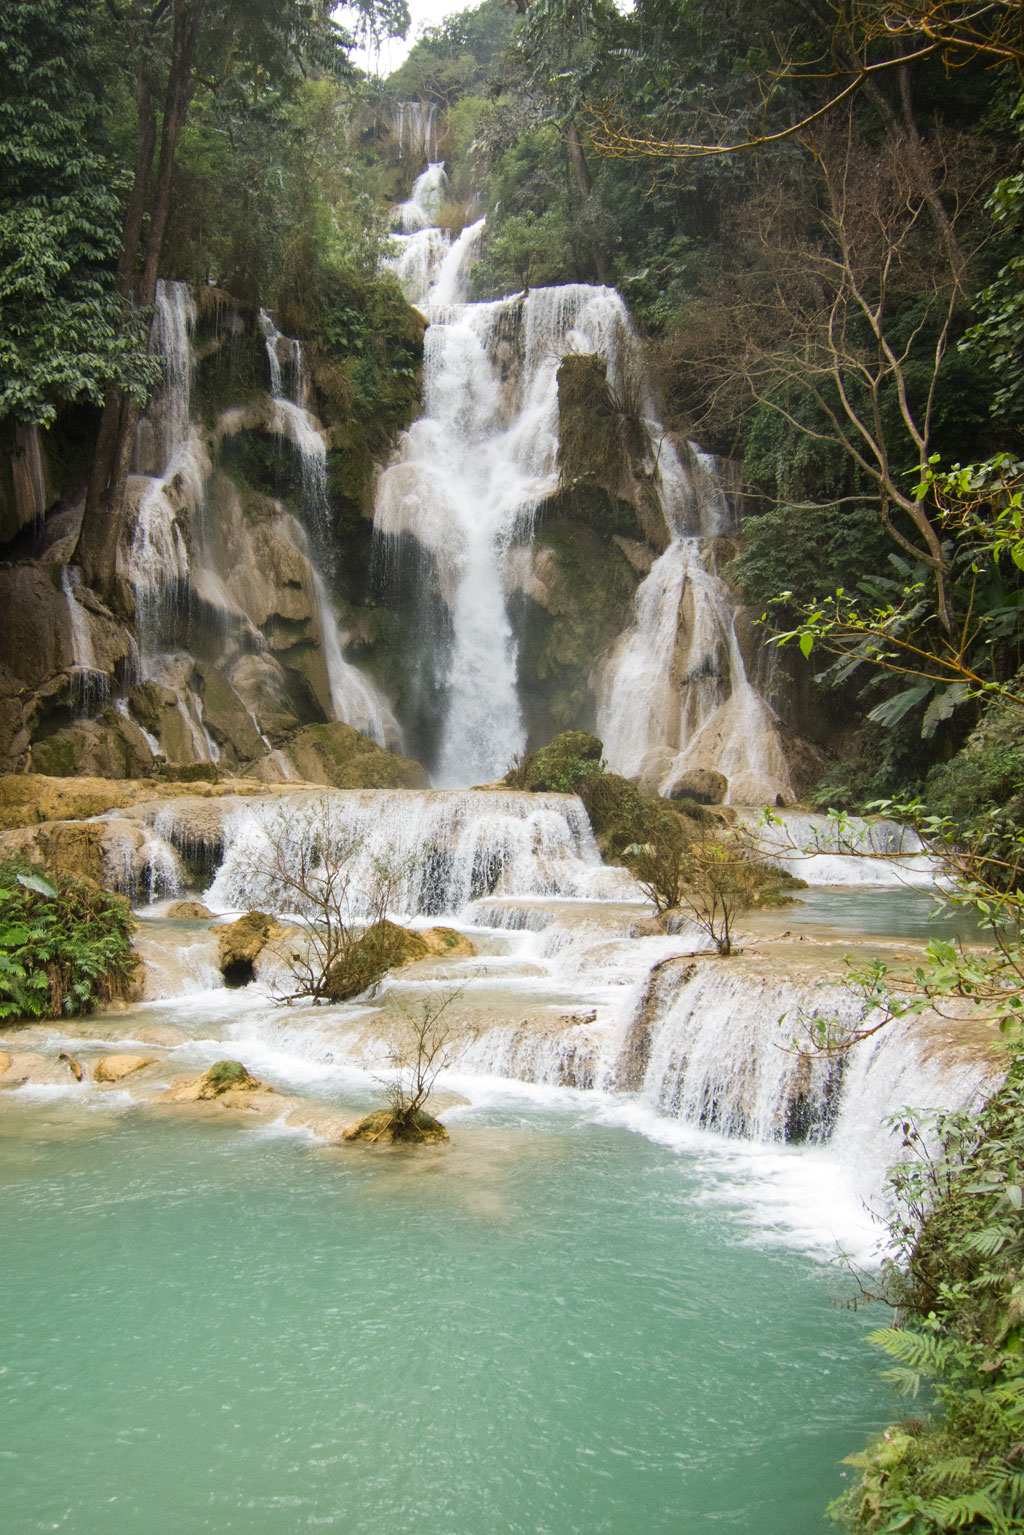 Luang Prabang – Wasserfall Kuang Si | SOMEWHERE ELSE